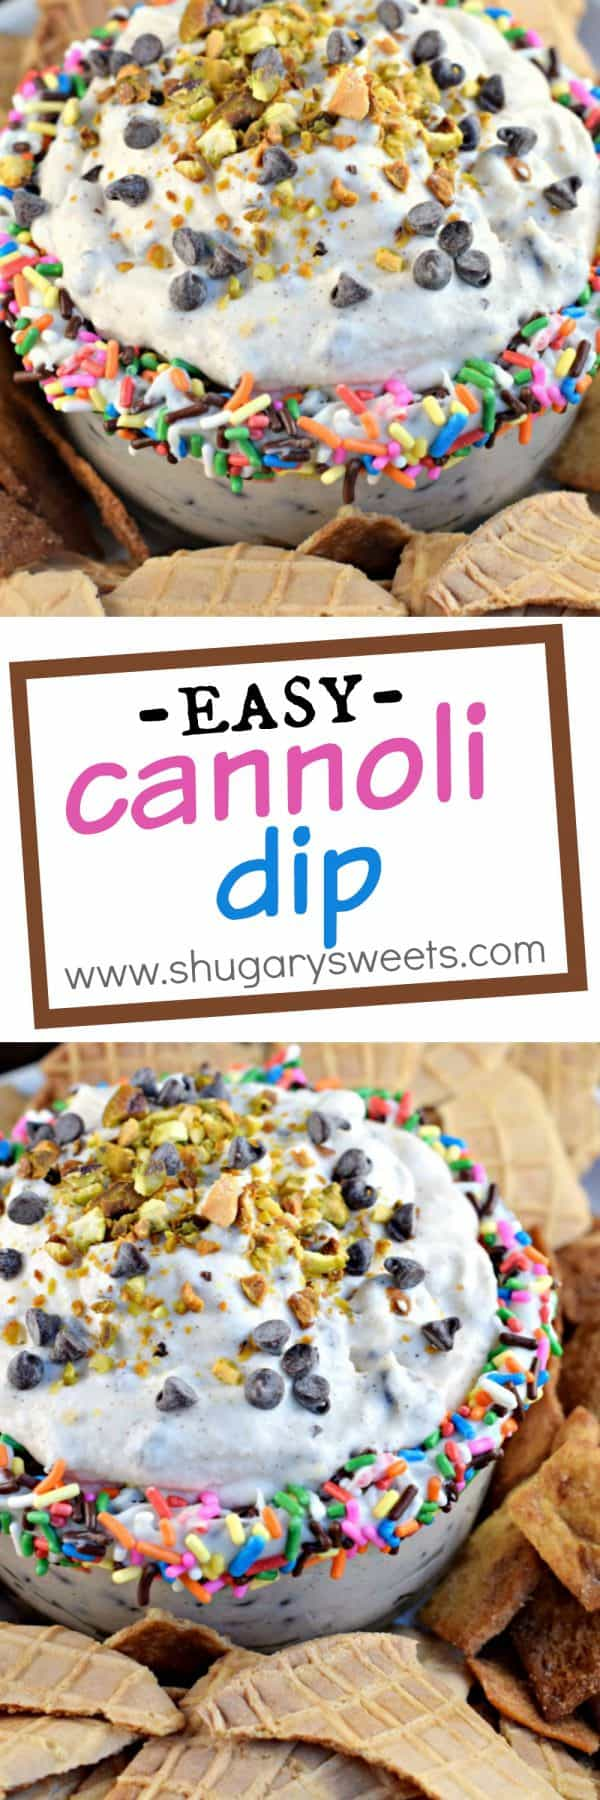 This easy, sweet Cannoli Dip recipe tastes like the delicious filling of your favorite Italian dessert!